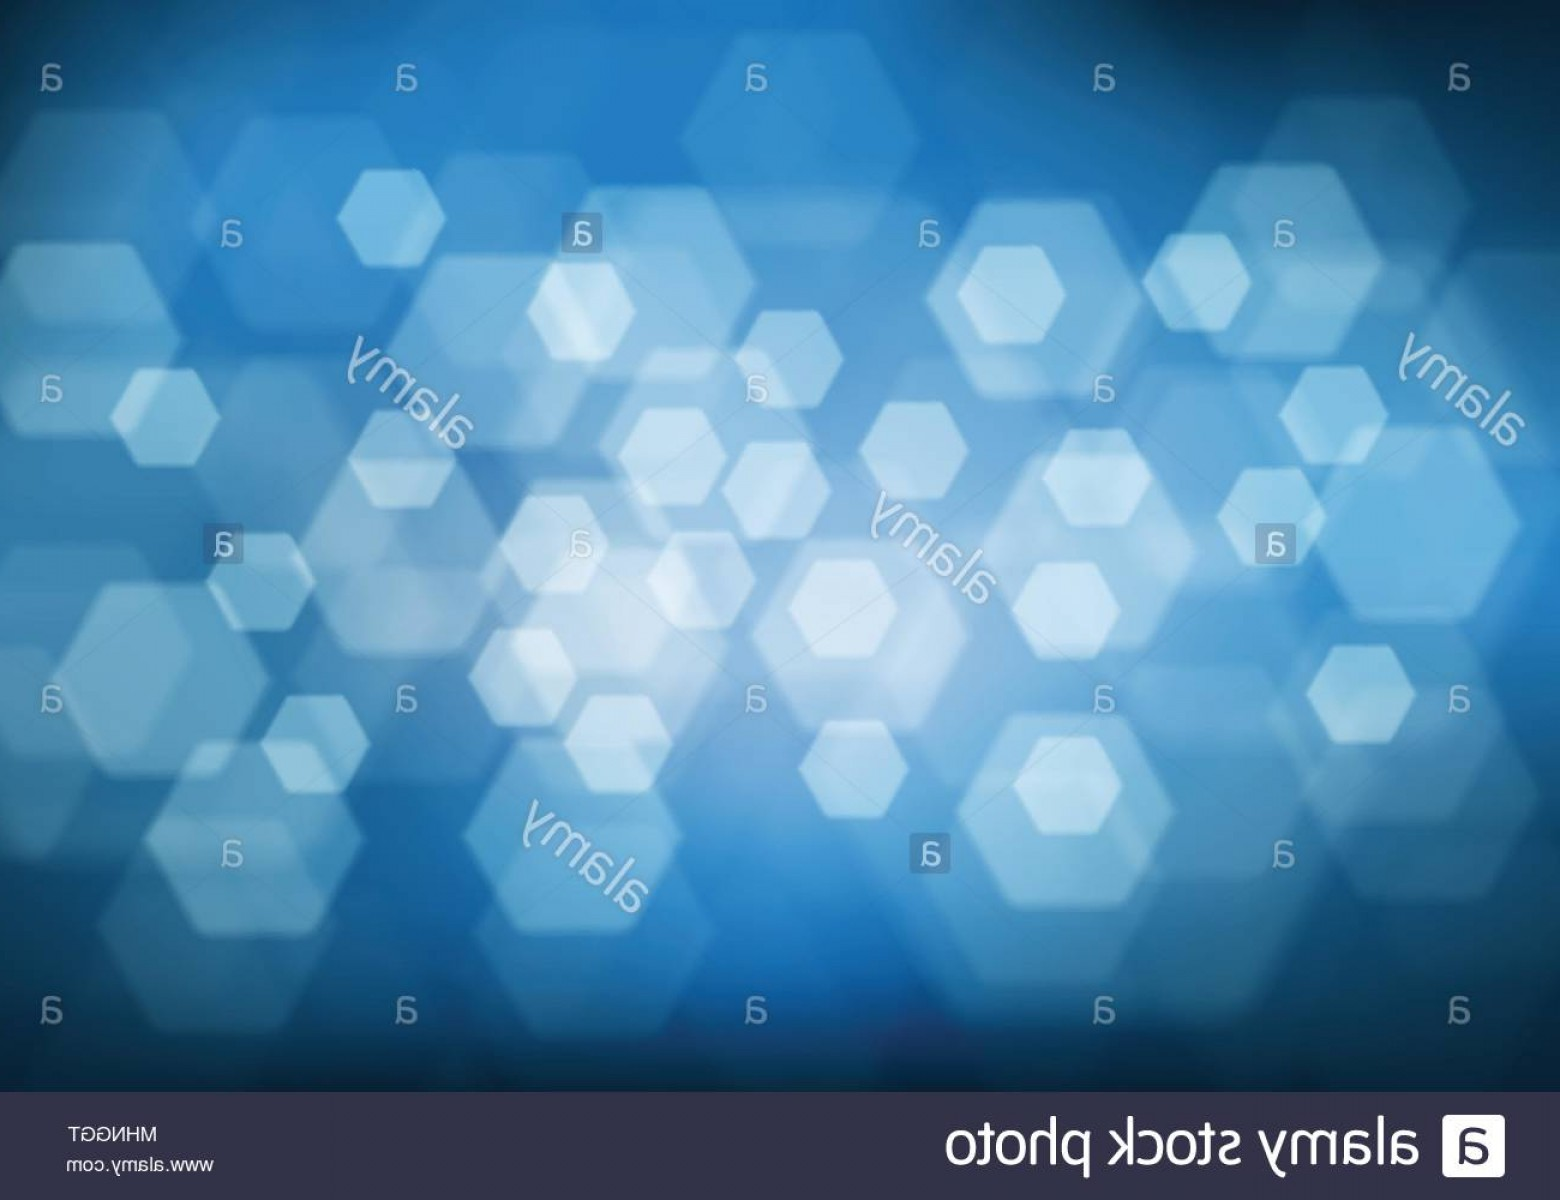 Vector Blue Luxury: Abstract Hexagon Bokeh Light On Blue Luxury Background Vector Illustration Image